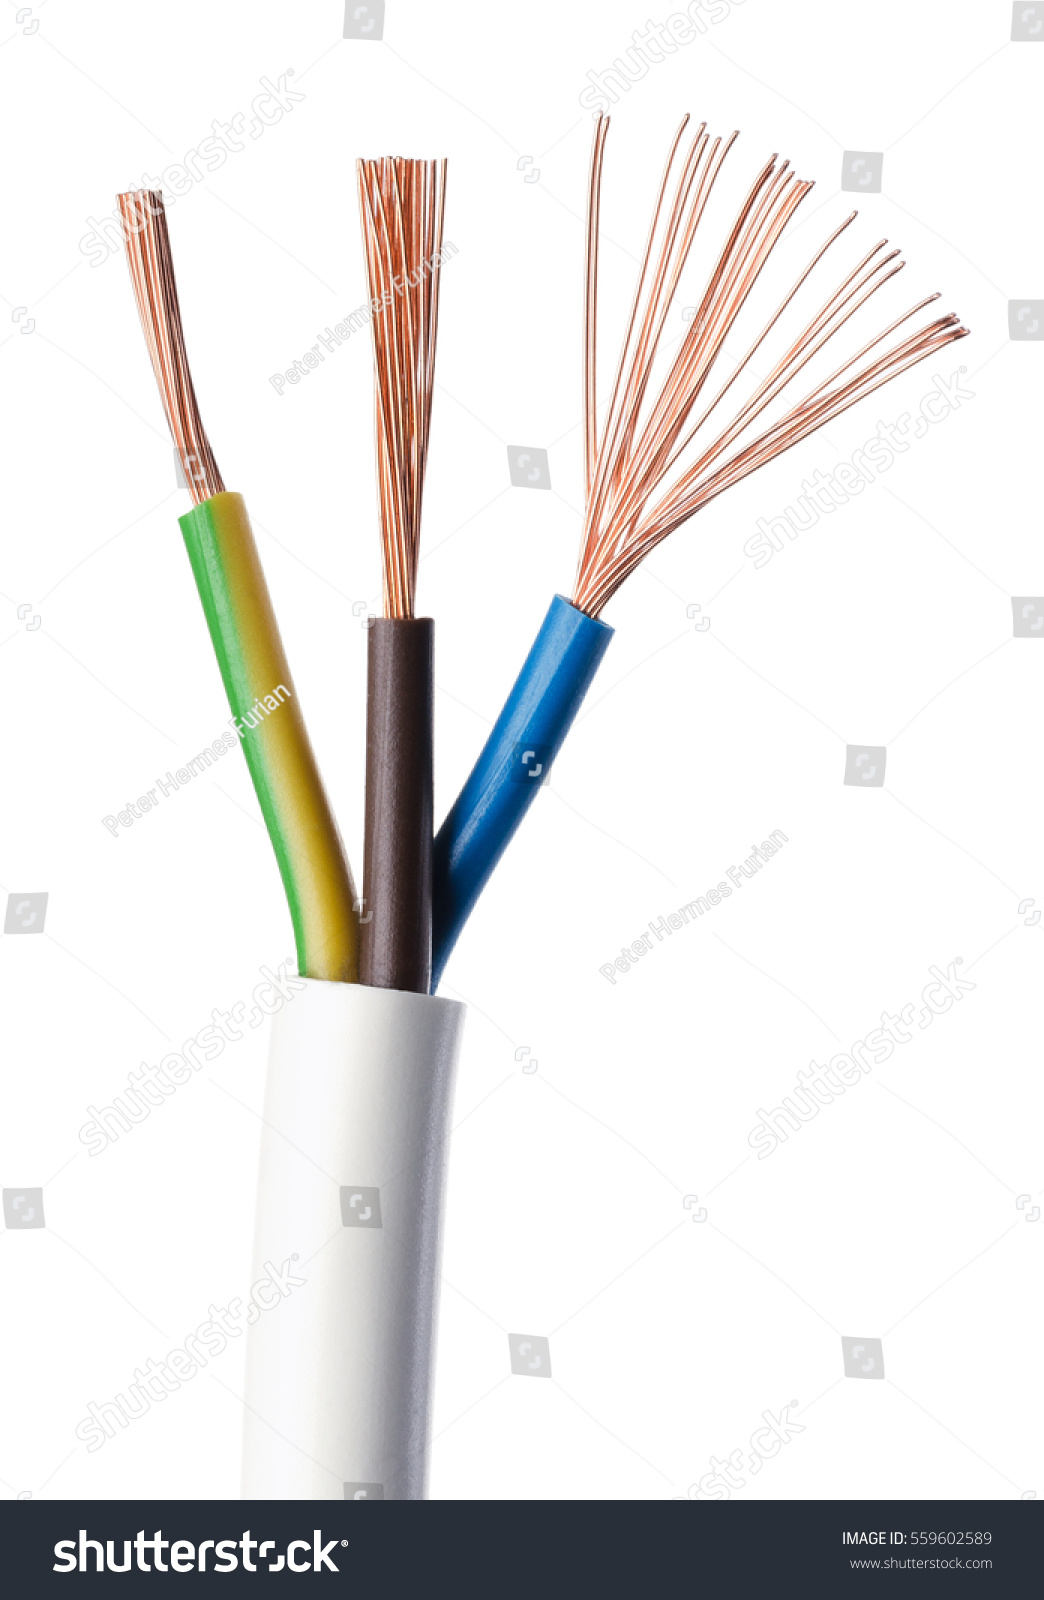 Wire Electric Power : Electrical power cable iec standard on stock photo